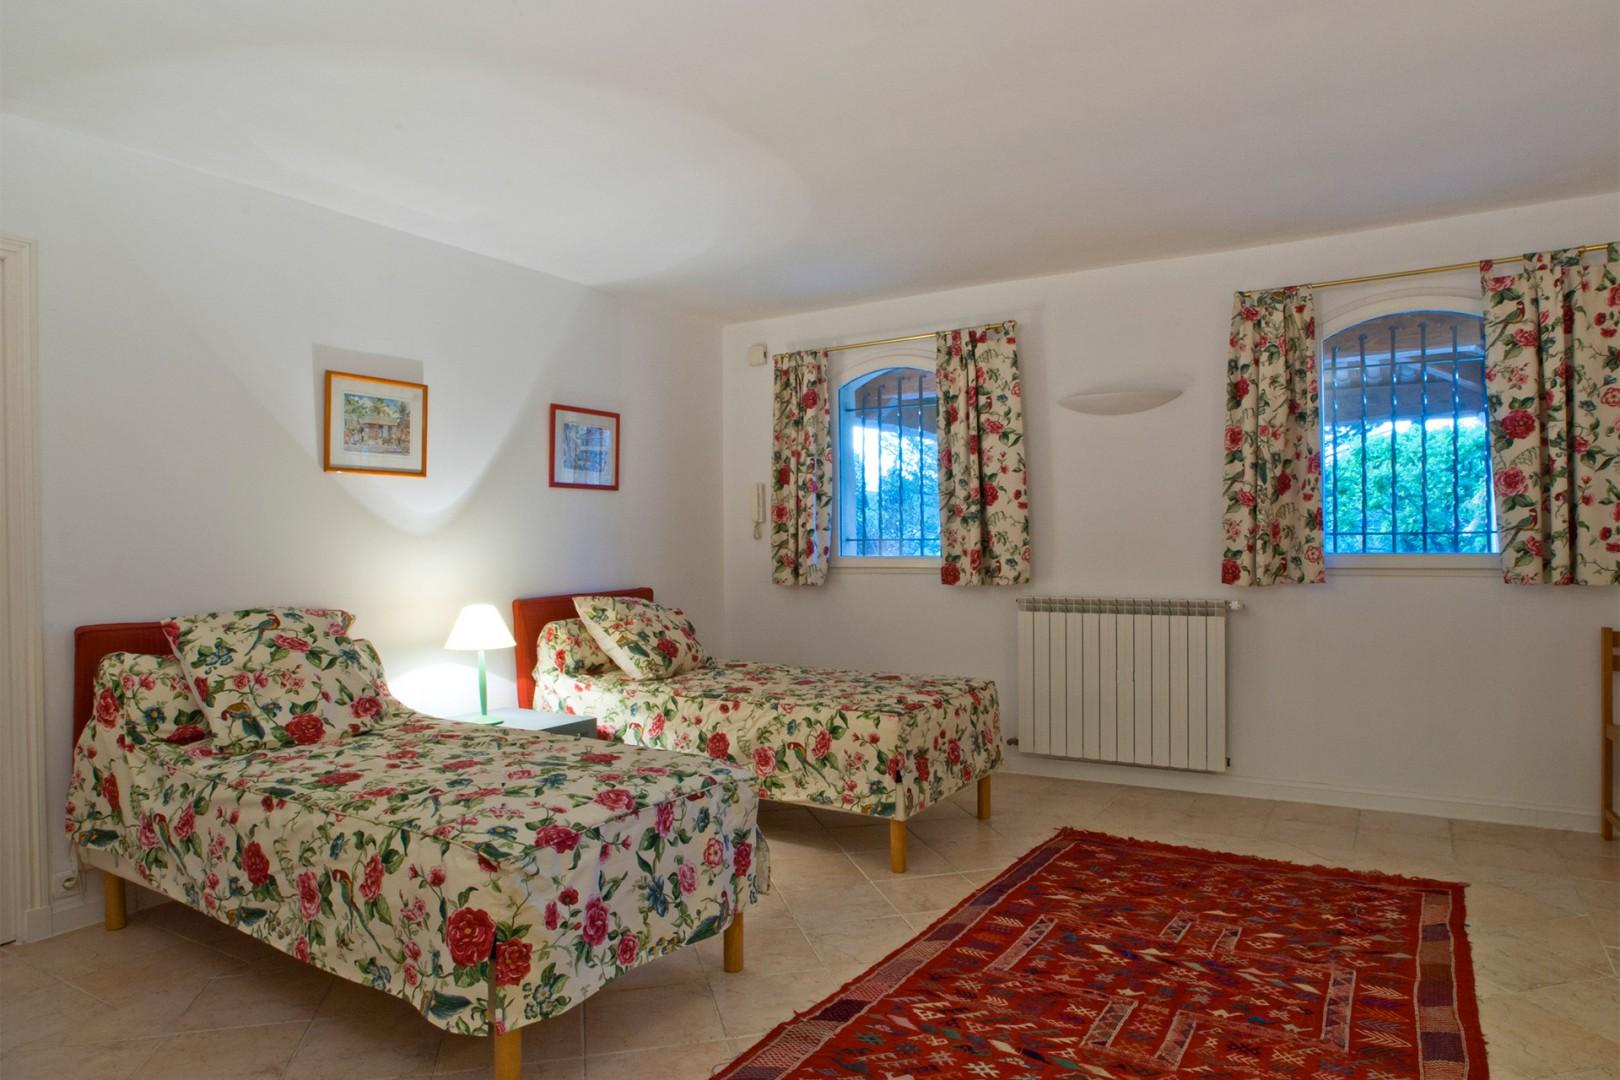 Bedroom 6 with two single beds that can be made up to form a king bed